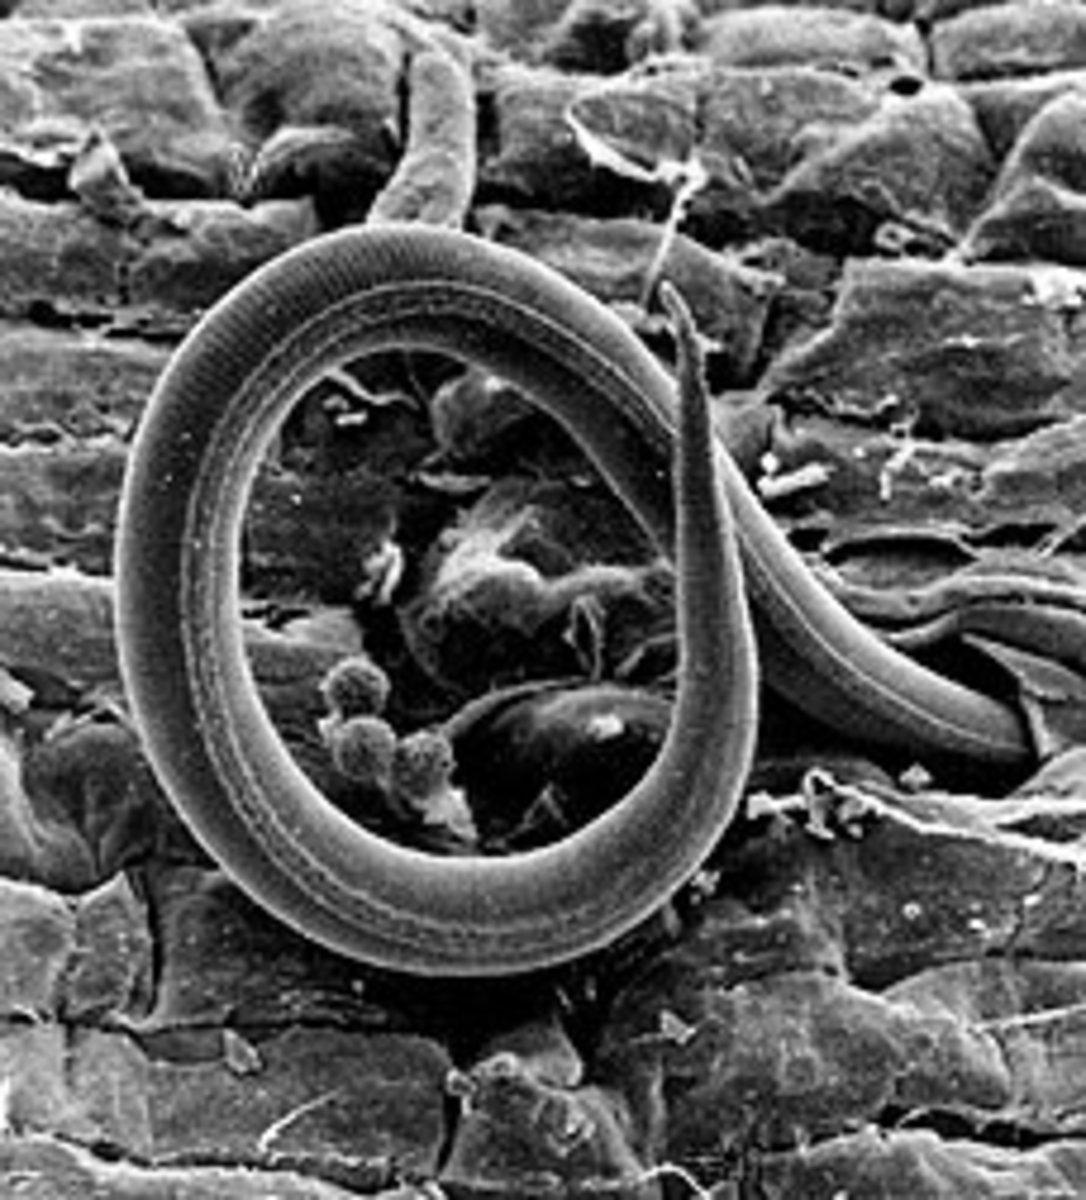 This is a 500X magnification of a root knot nematode entering a tomato root.